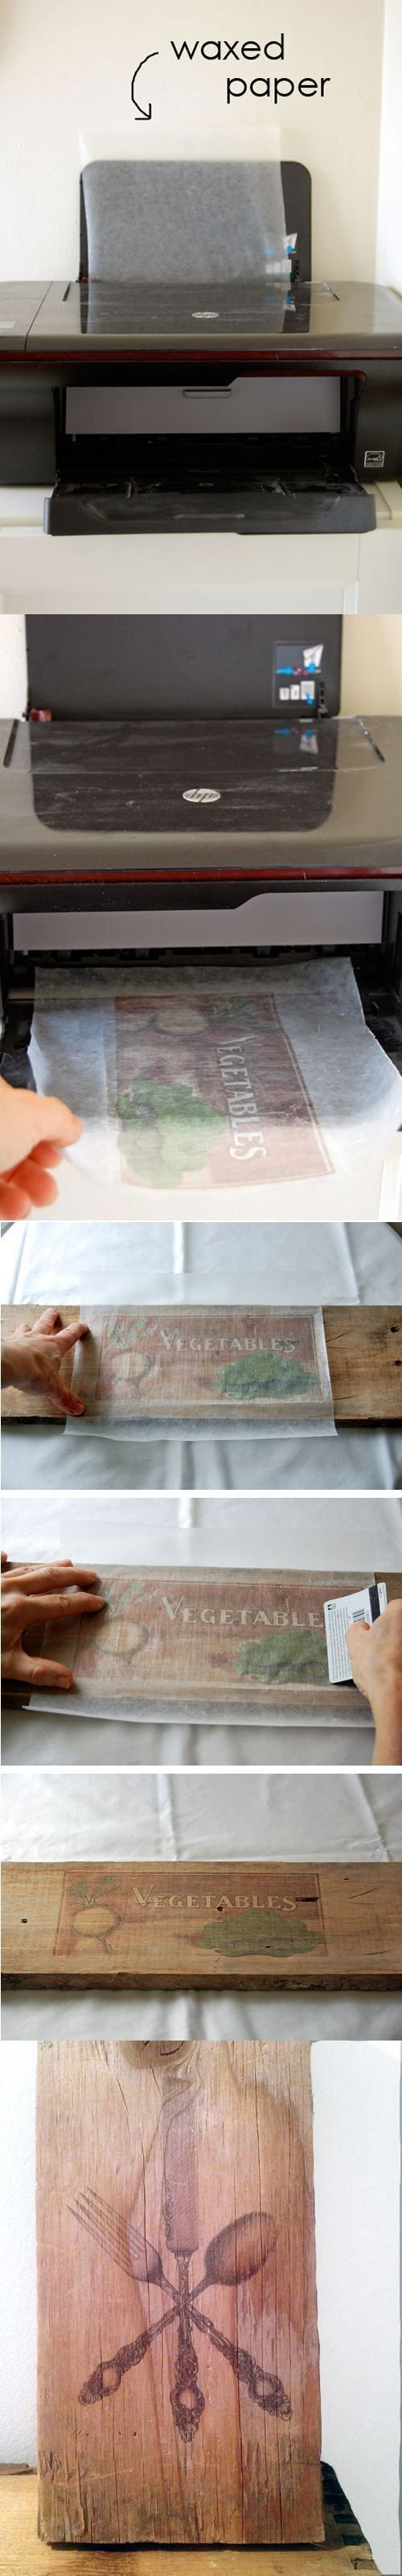 "Found this on, you guessed it, Pinterest, and thought it was a pretty cool project. Source: <a rel=""noreferrer nofollow"" target=""_blank"" href=""http://www.theartofdoingstuff.com/how-to-print-pictures-on-woodwaxed-paper-transfer"">http://www.theartofdoingstuff.com/how-to-print-pictures-on-woodwaxed-paper-transfer</a>  EDIT: A couple of tips from commenters:  <a href=""//imgur.com/user/lvluffin"">@lvluffin</a> Use parchment paper, not wax paper.  <a…"